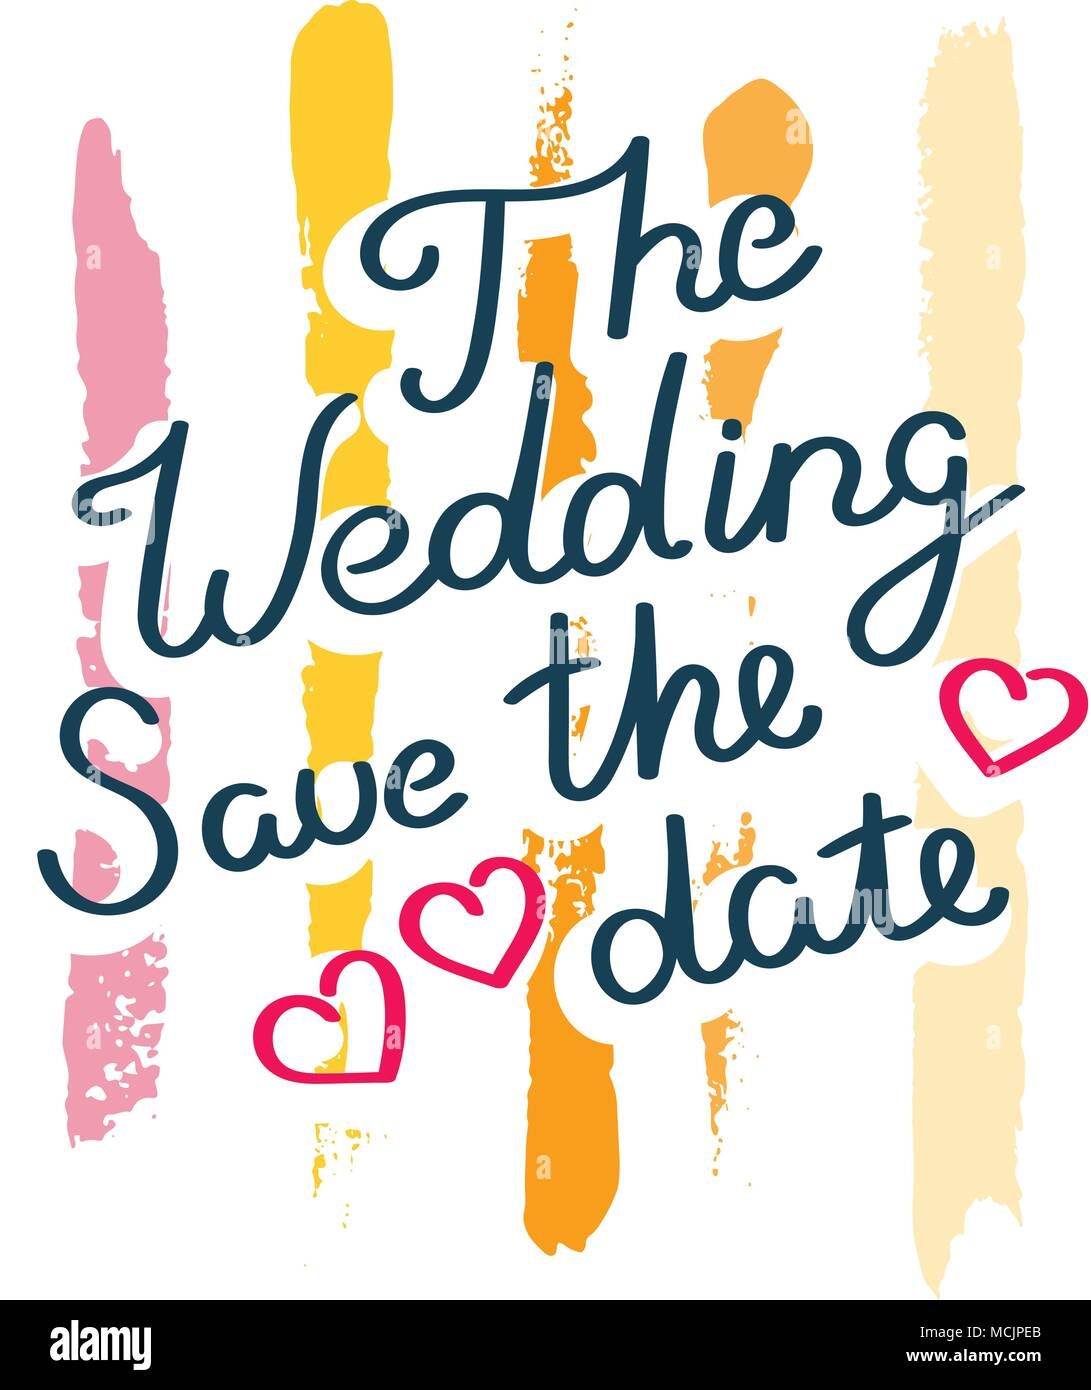 the wedding save the date hand drawn motivation quote creative